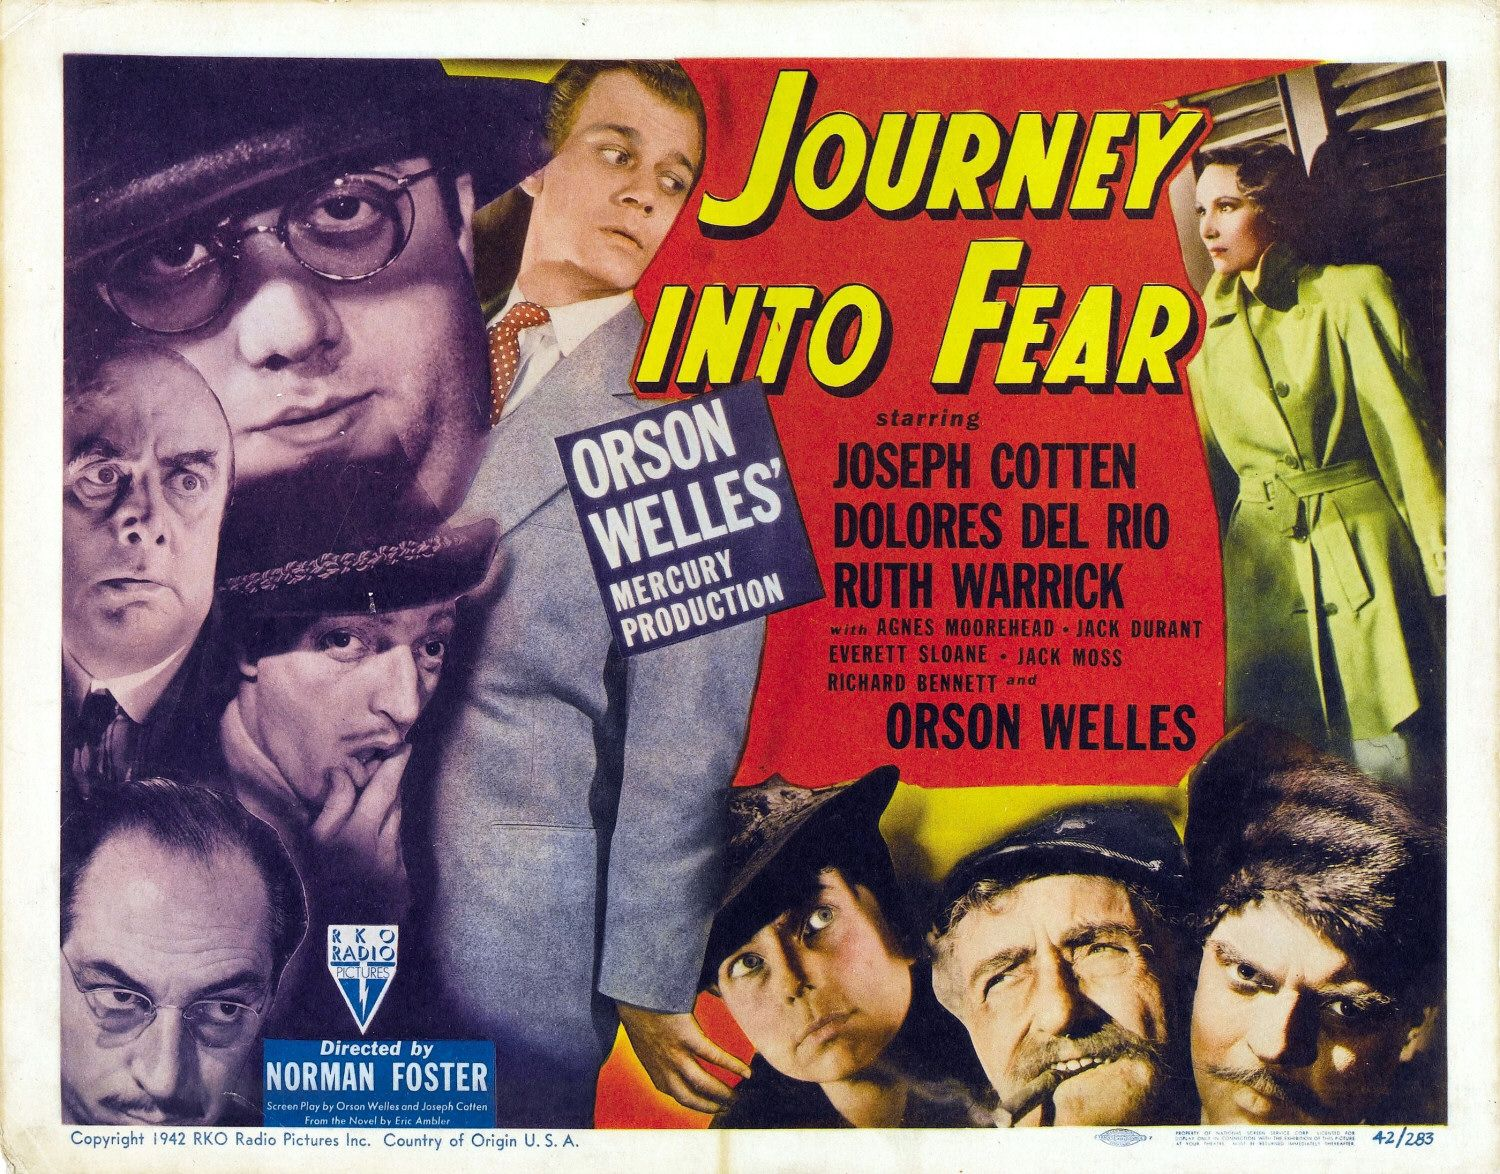 The film's promotional poster.